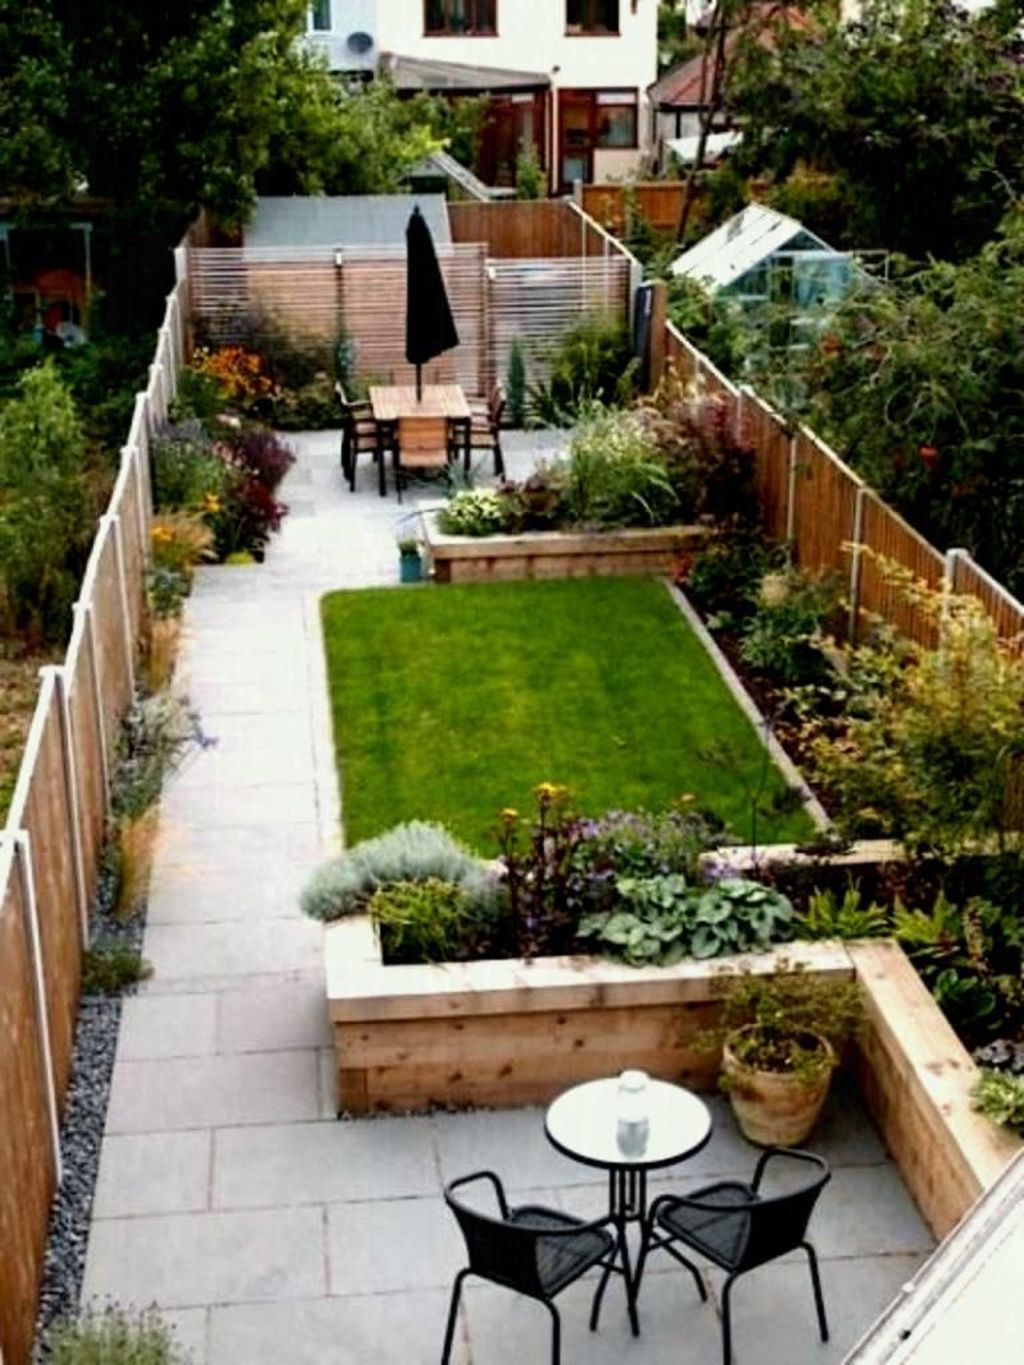 The Best Minimalist Garden Design Ideas You Have To Try 31